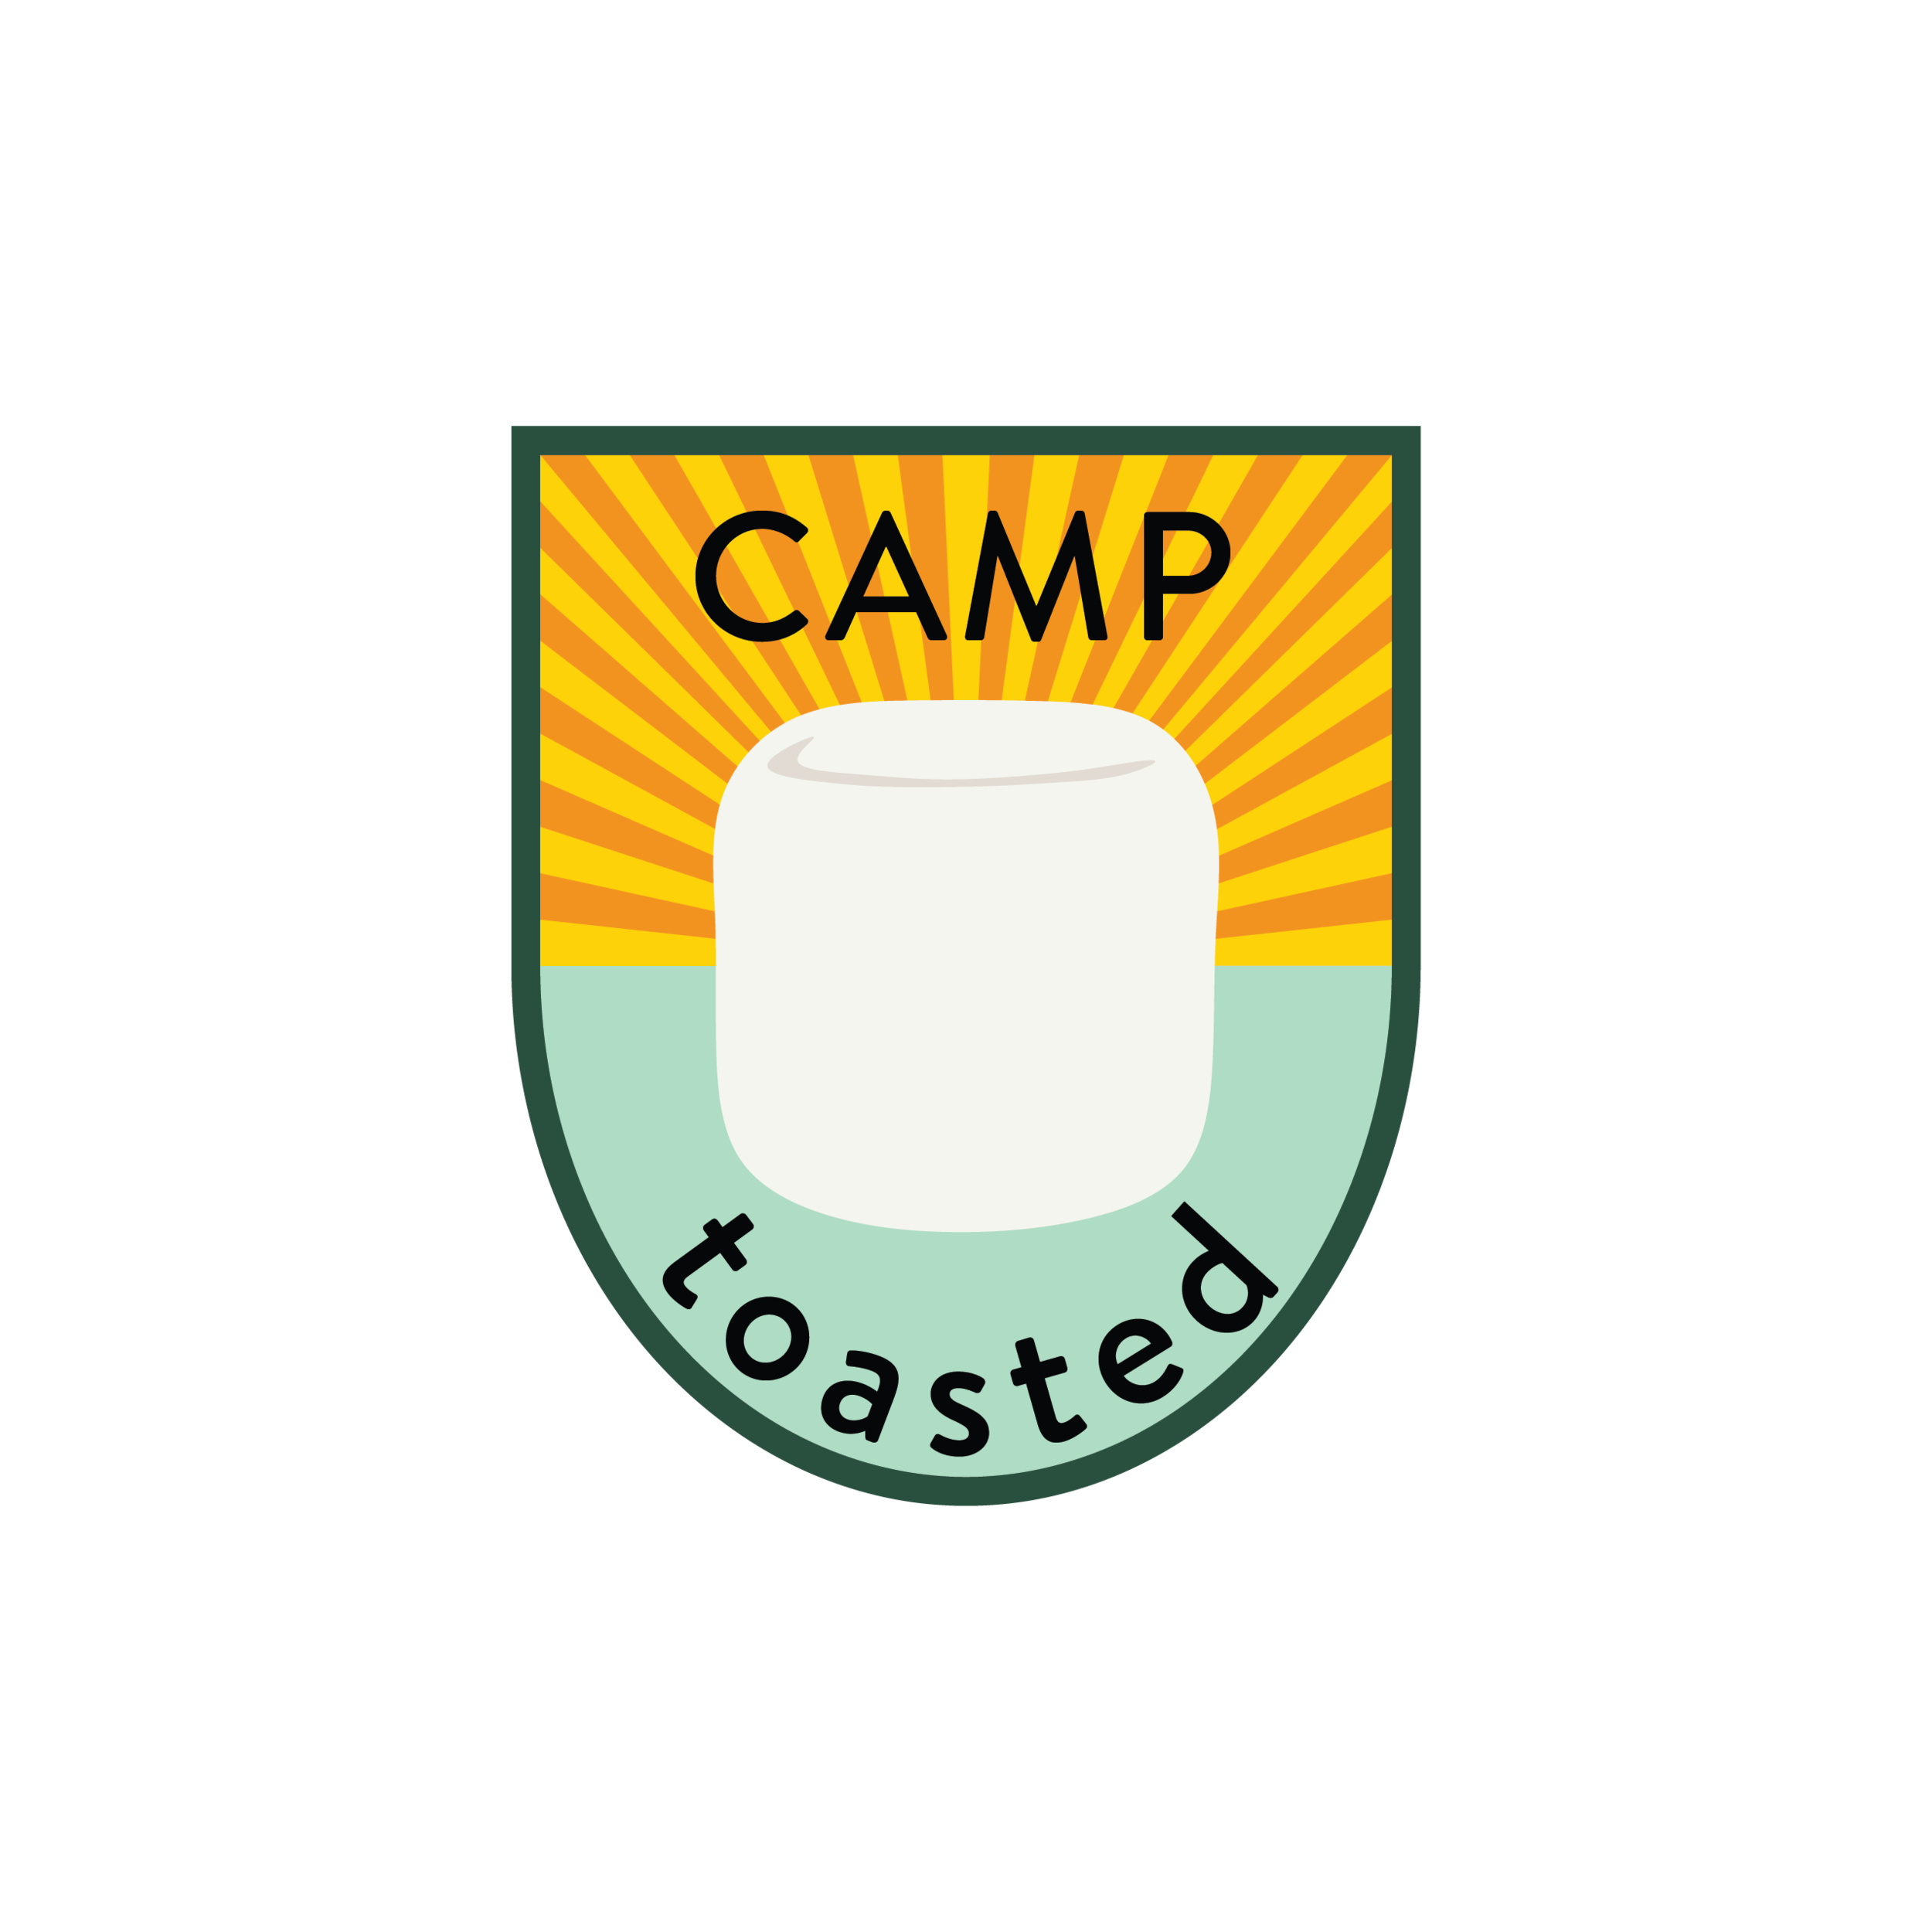 camp-toasted-logo.png